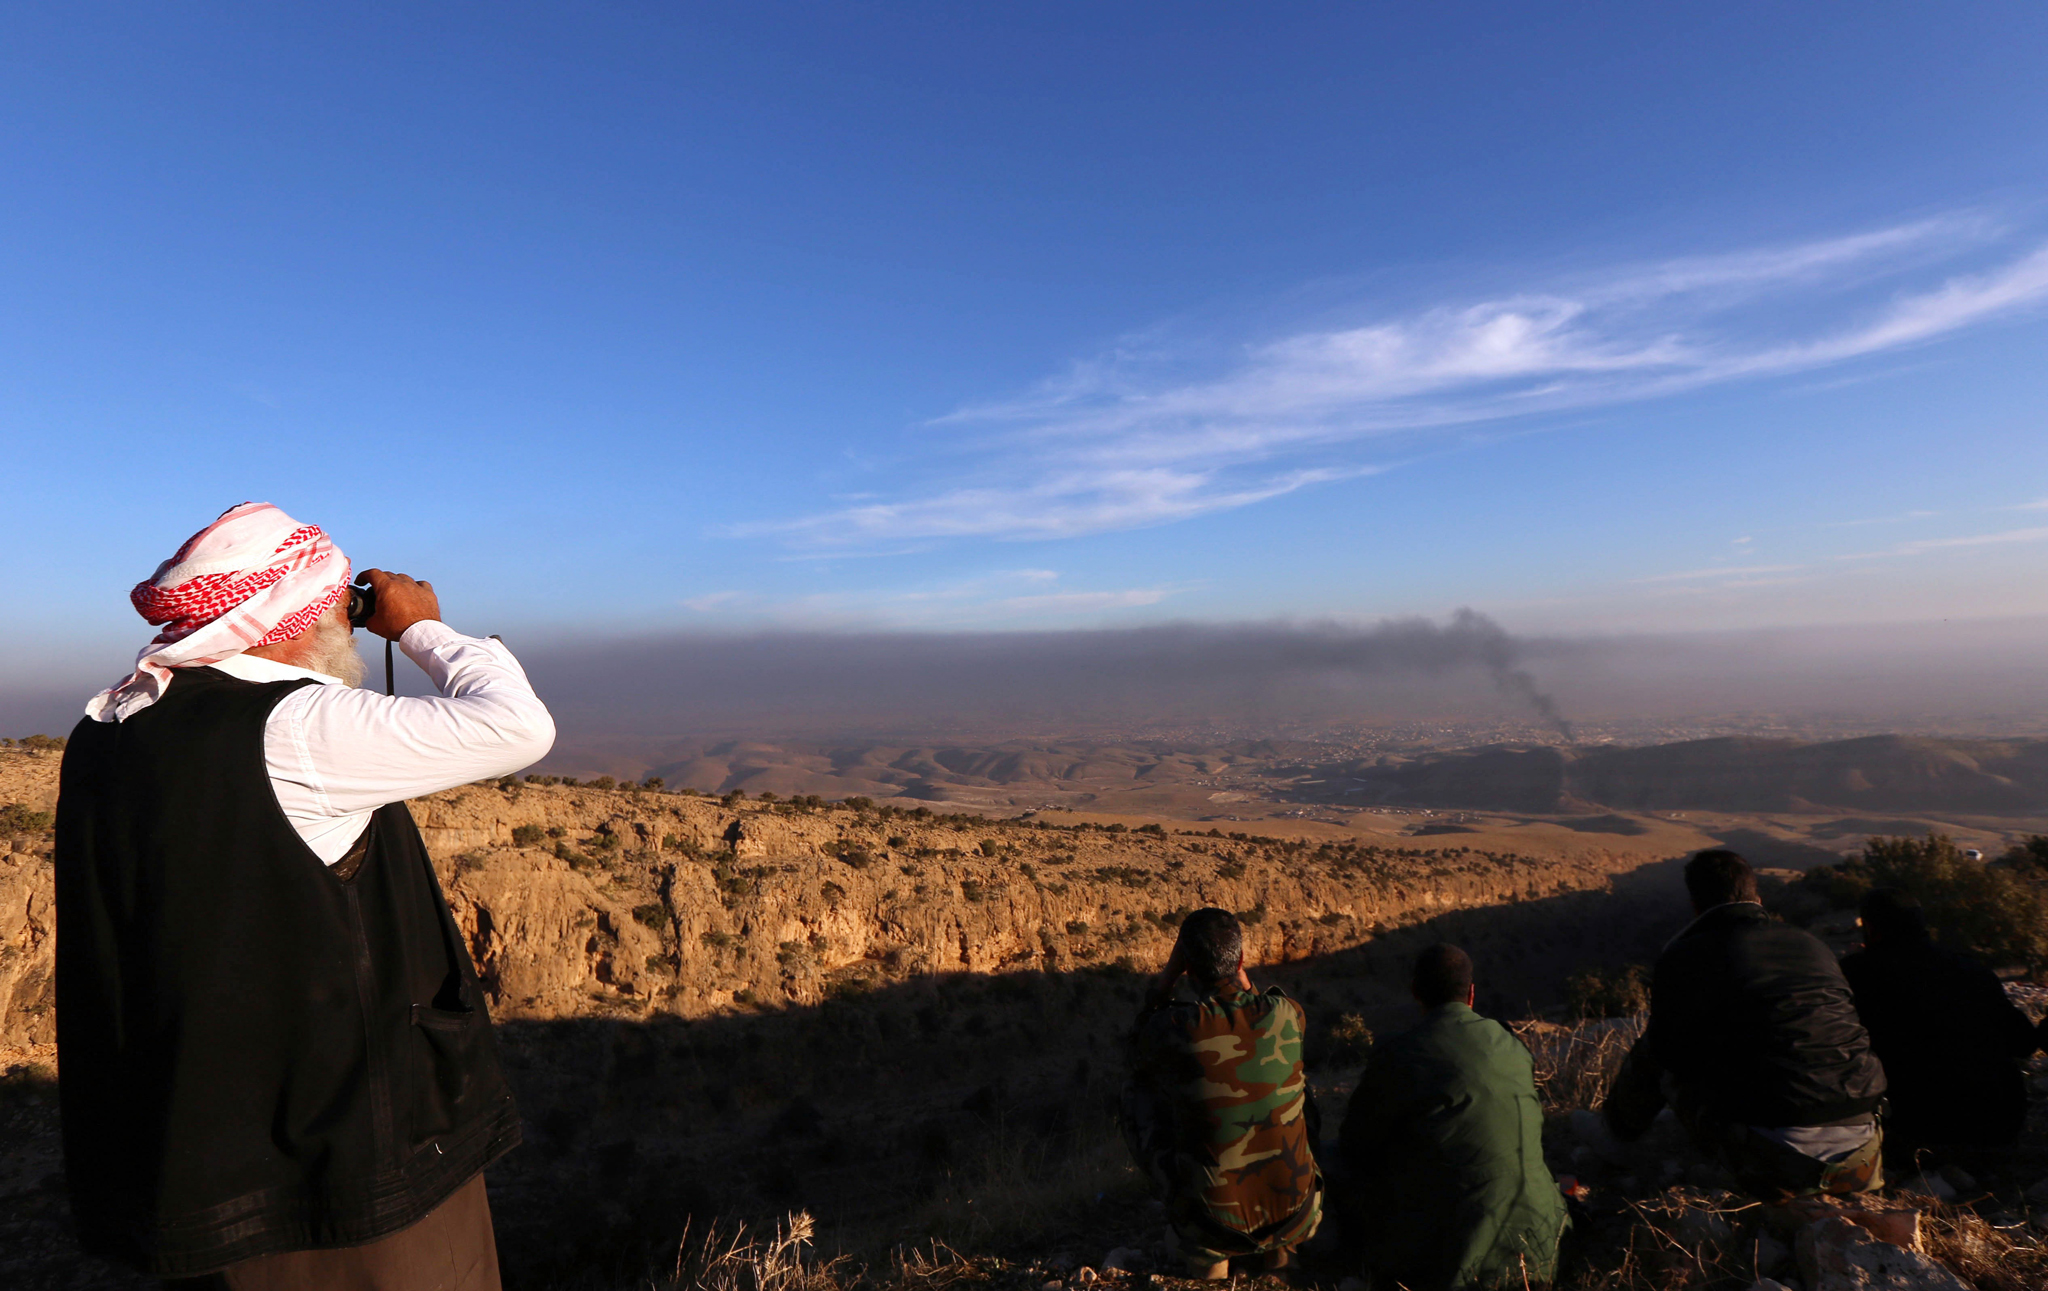 A displaced Iraqi man (L) from the Yazidi community, who fled violence between Islamic State (IS) group jihadists and Peshmerga fighters in the Iraqi town of Sinjar, in the northern Iraqi province of Mosul, looks on as smoke billows during an operation by Iraqi Kurdish forces backed by US-led strikes in the northern Iraqi town of Sinjar on November 12, 2015, to retake the town from the Islamic State group and cut a key supply line to Syria. AFP PHOTO / SAFIN HAMEDSAFIN HAMED/AFP/Getty Images